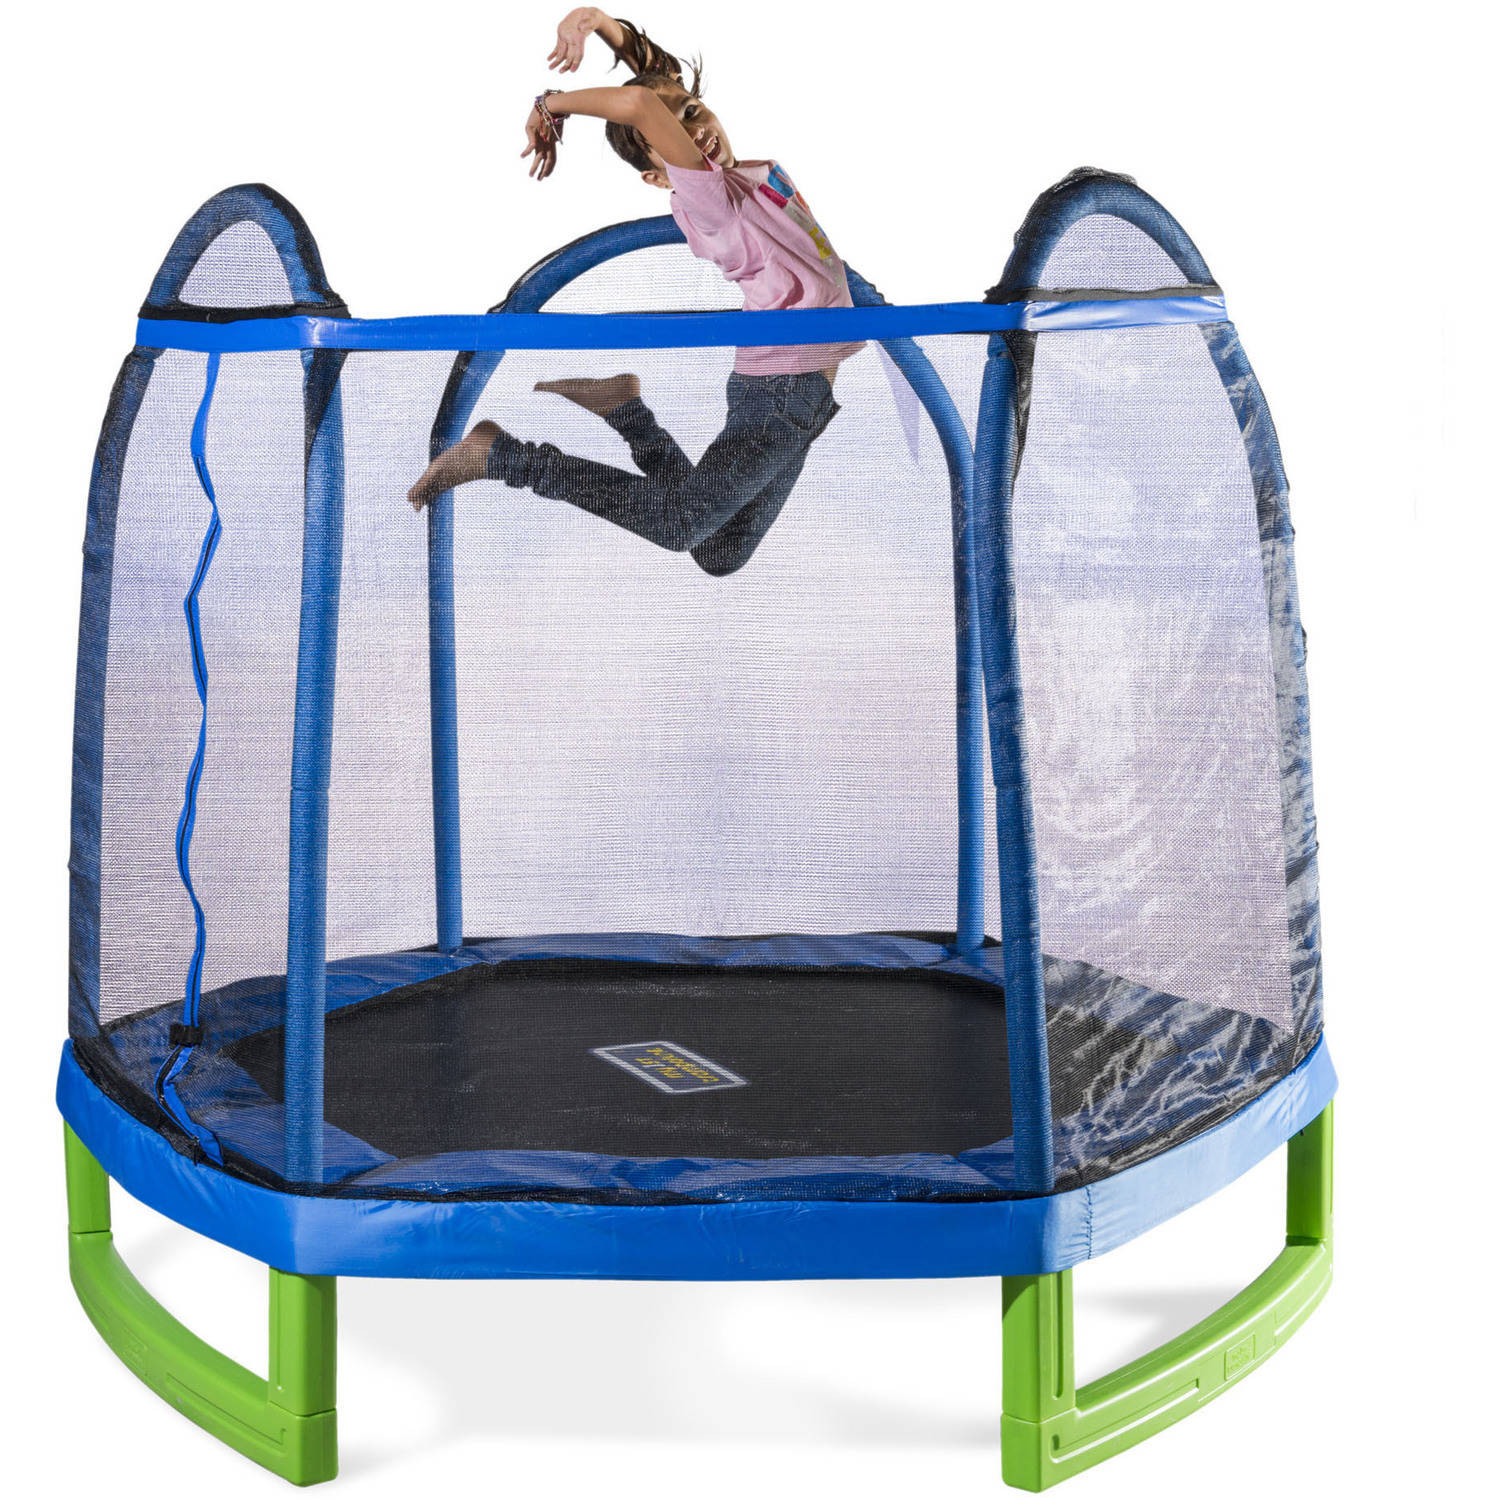 Trampoline Parts Retailers: Bounce Pro 7' My First Trampoline 687064055292